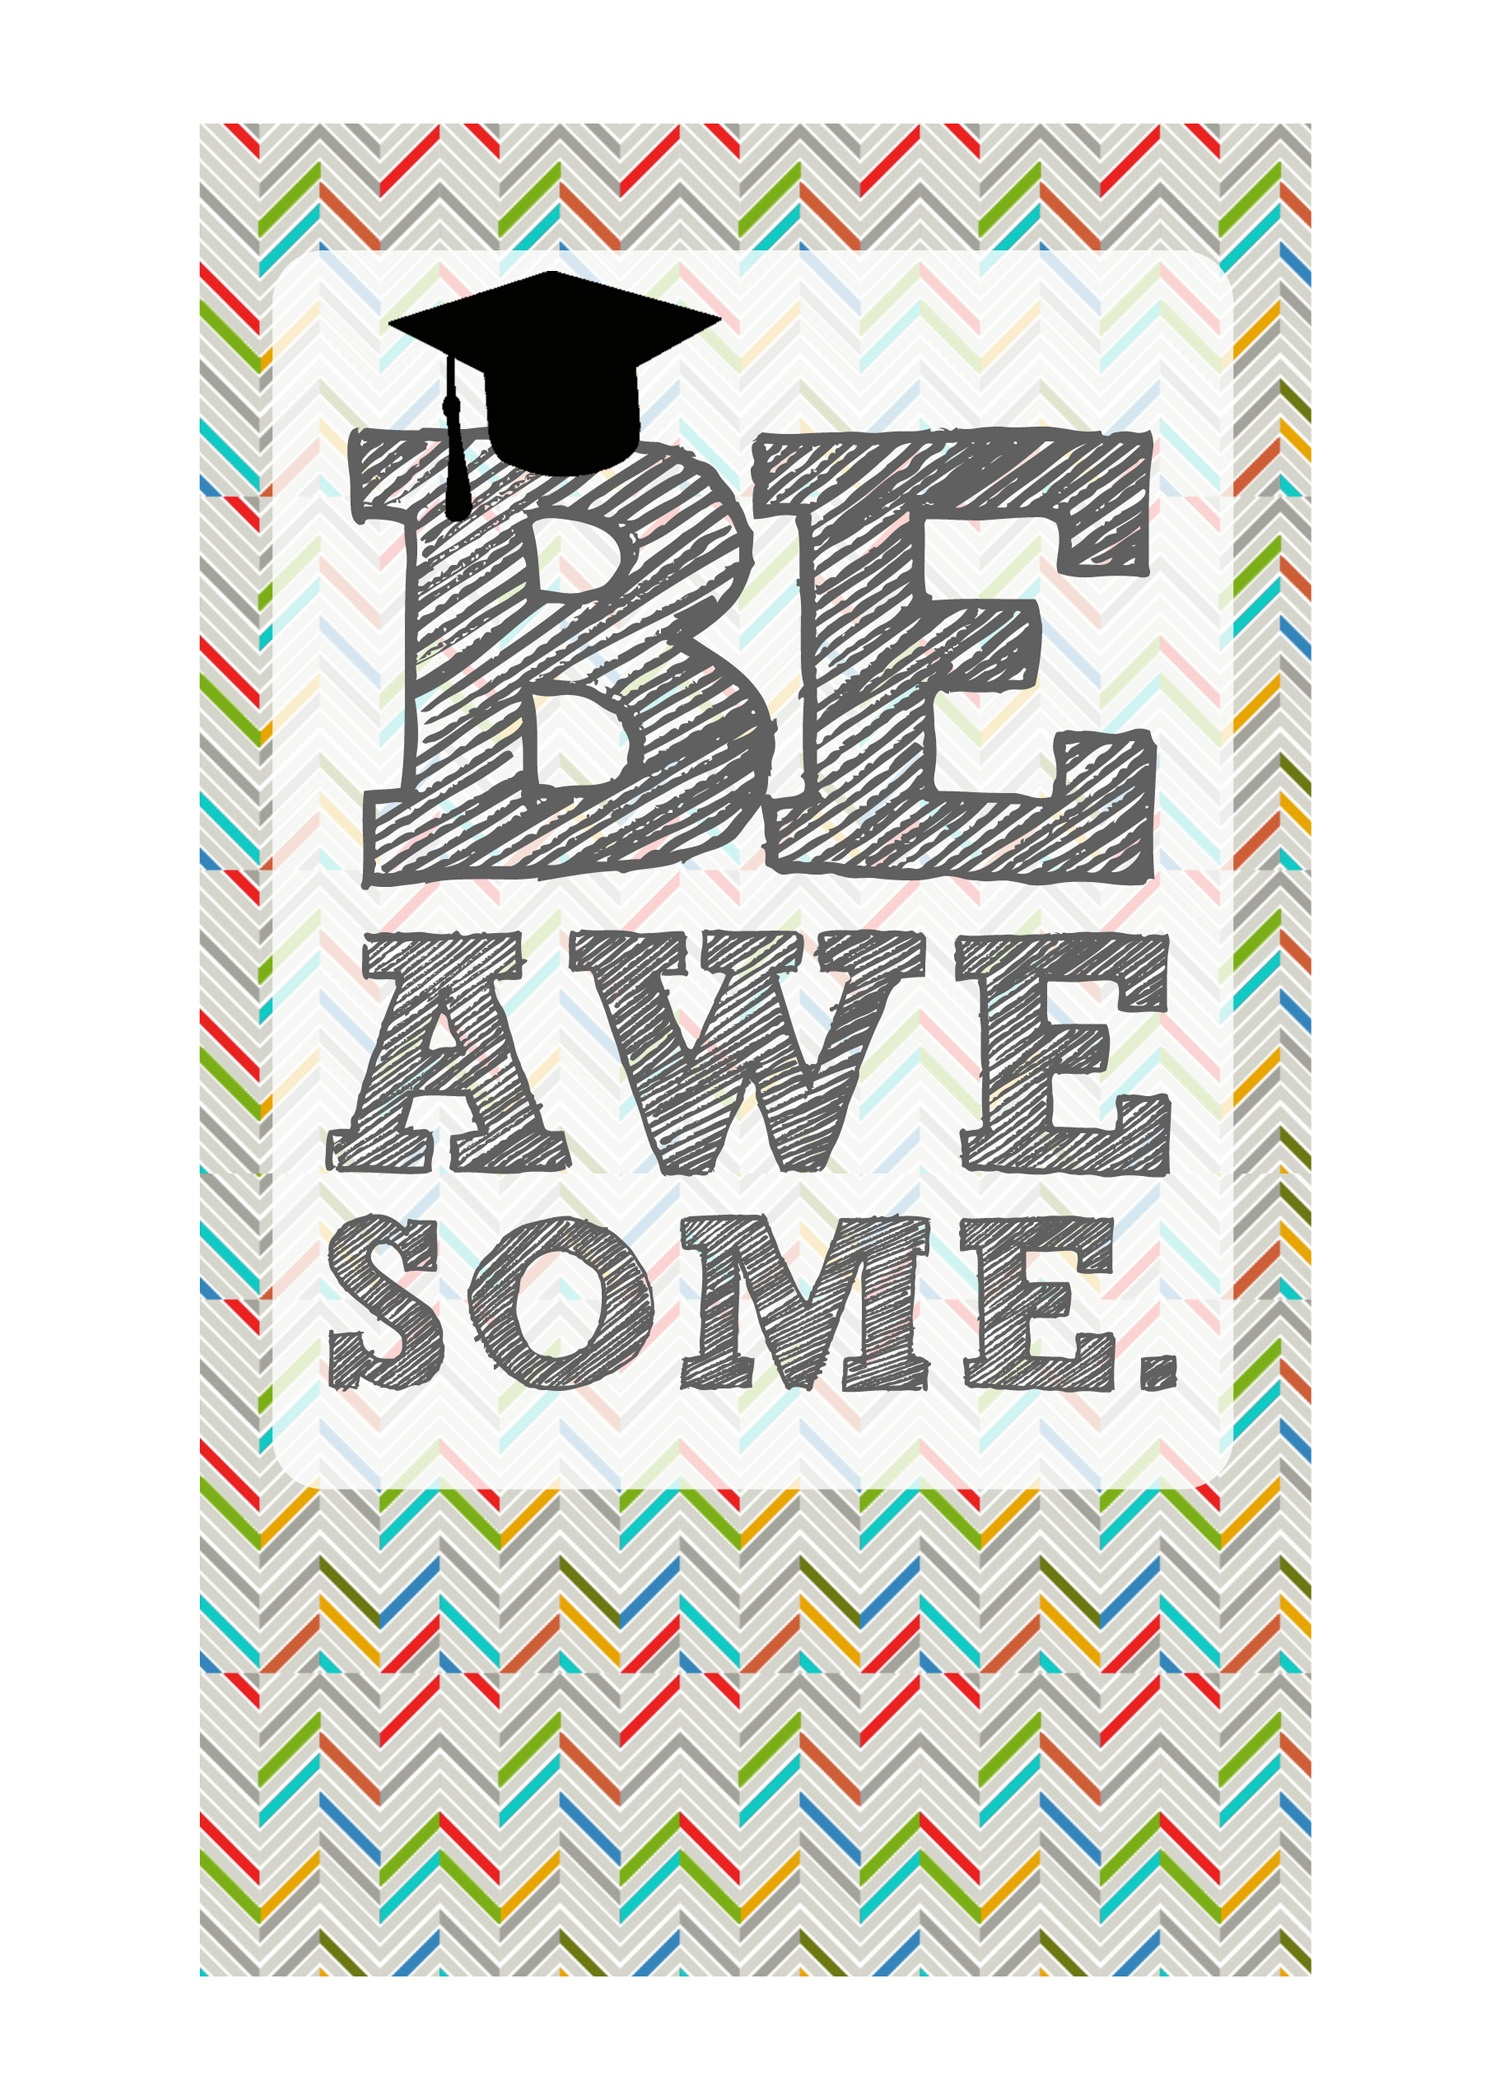 Diy Printable Graduation Cards–'omg' & 'be Awesome' - Free Printable Graduation Cards To Print